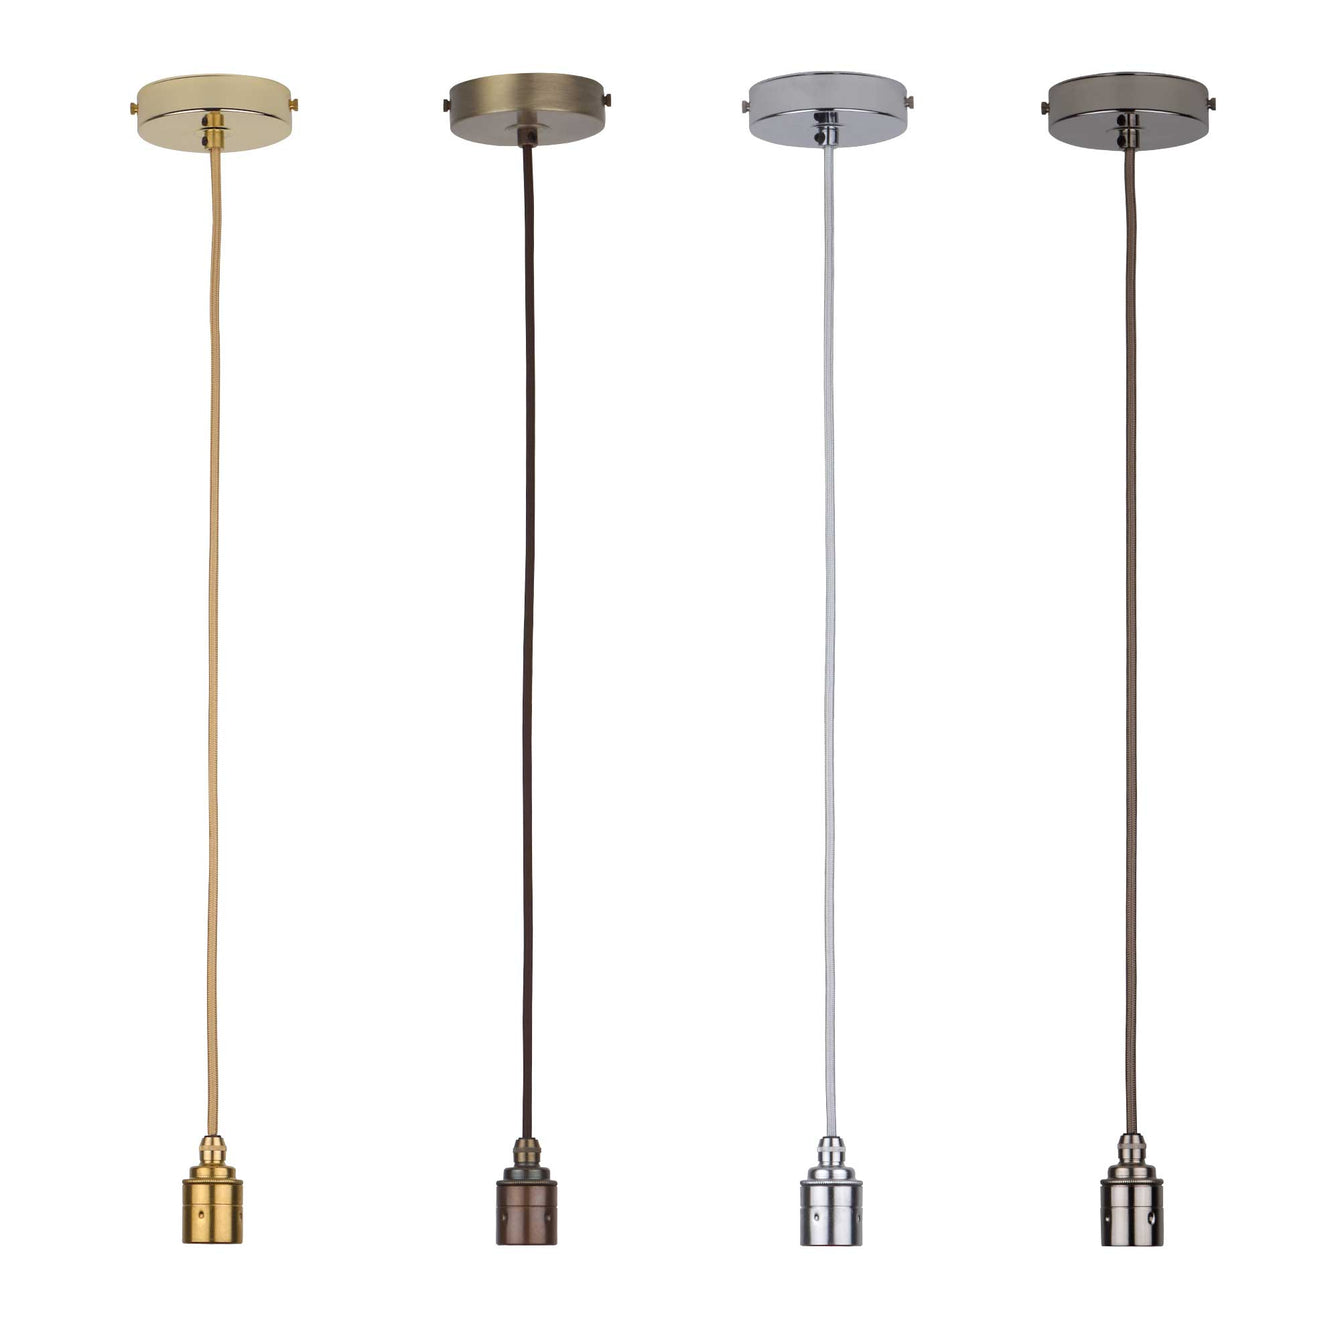 ElekTek Premium Pendant Light Kit DIY 100mm Flat Top Ceiling Rose, Round Flex and Lamp Holder E27 Plain Cord Grip - Buy It Better Brass